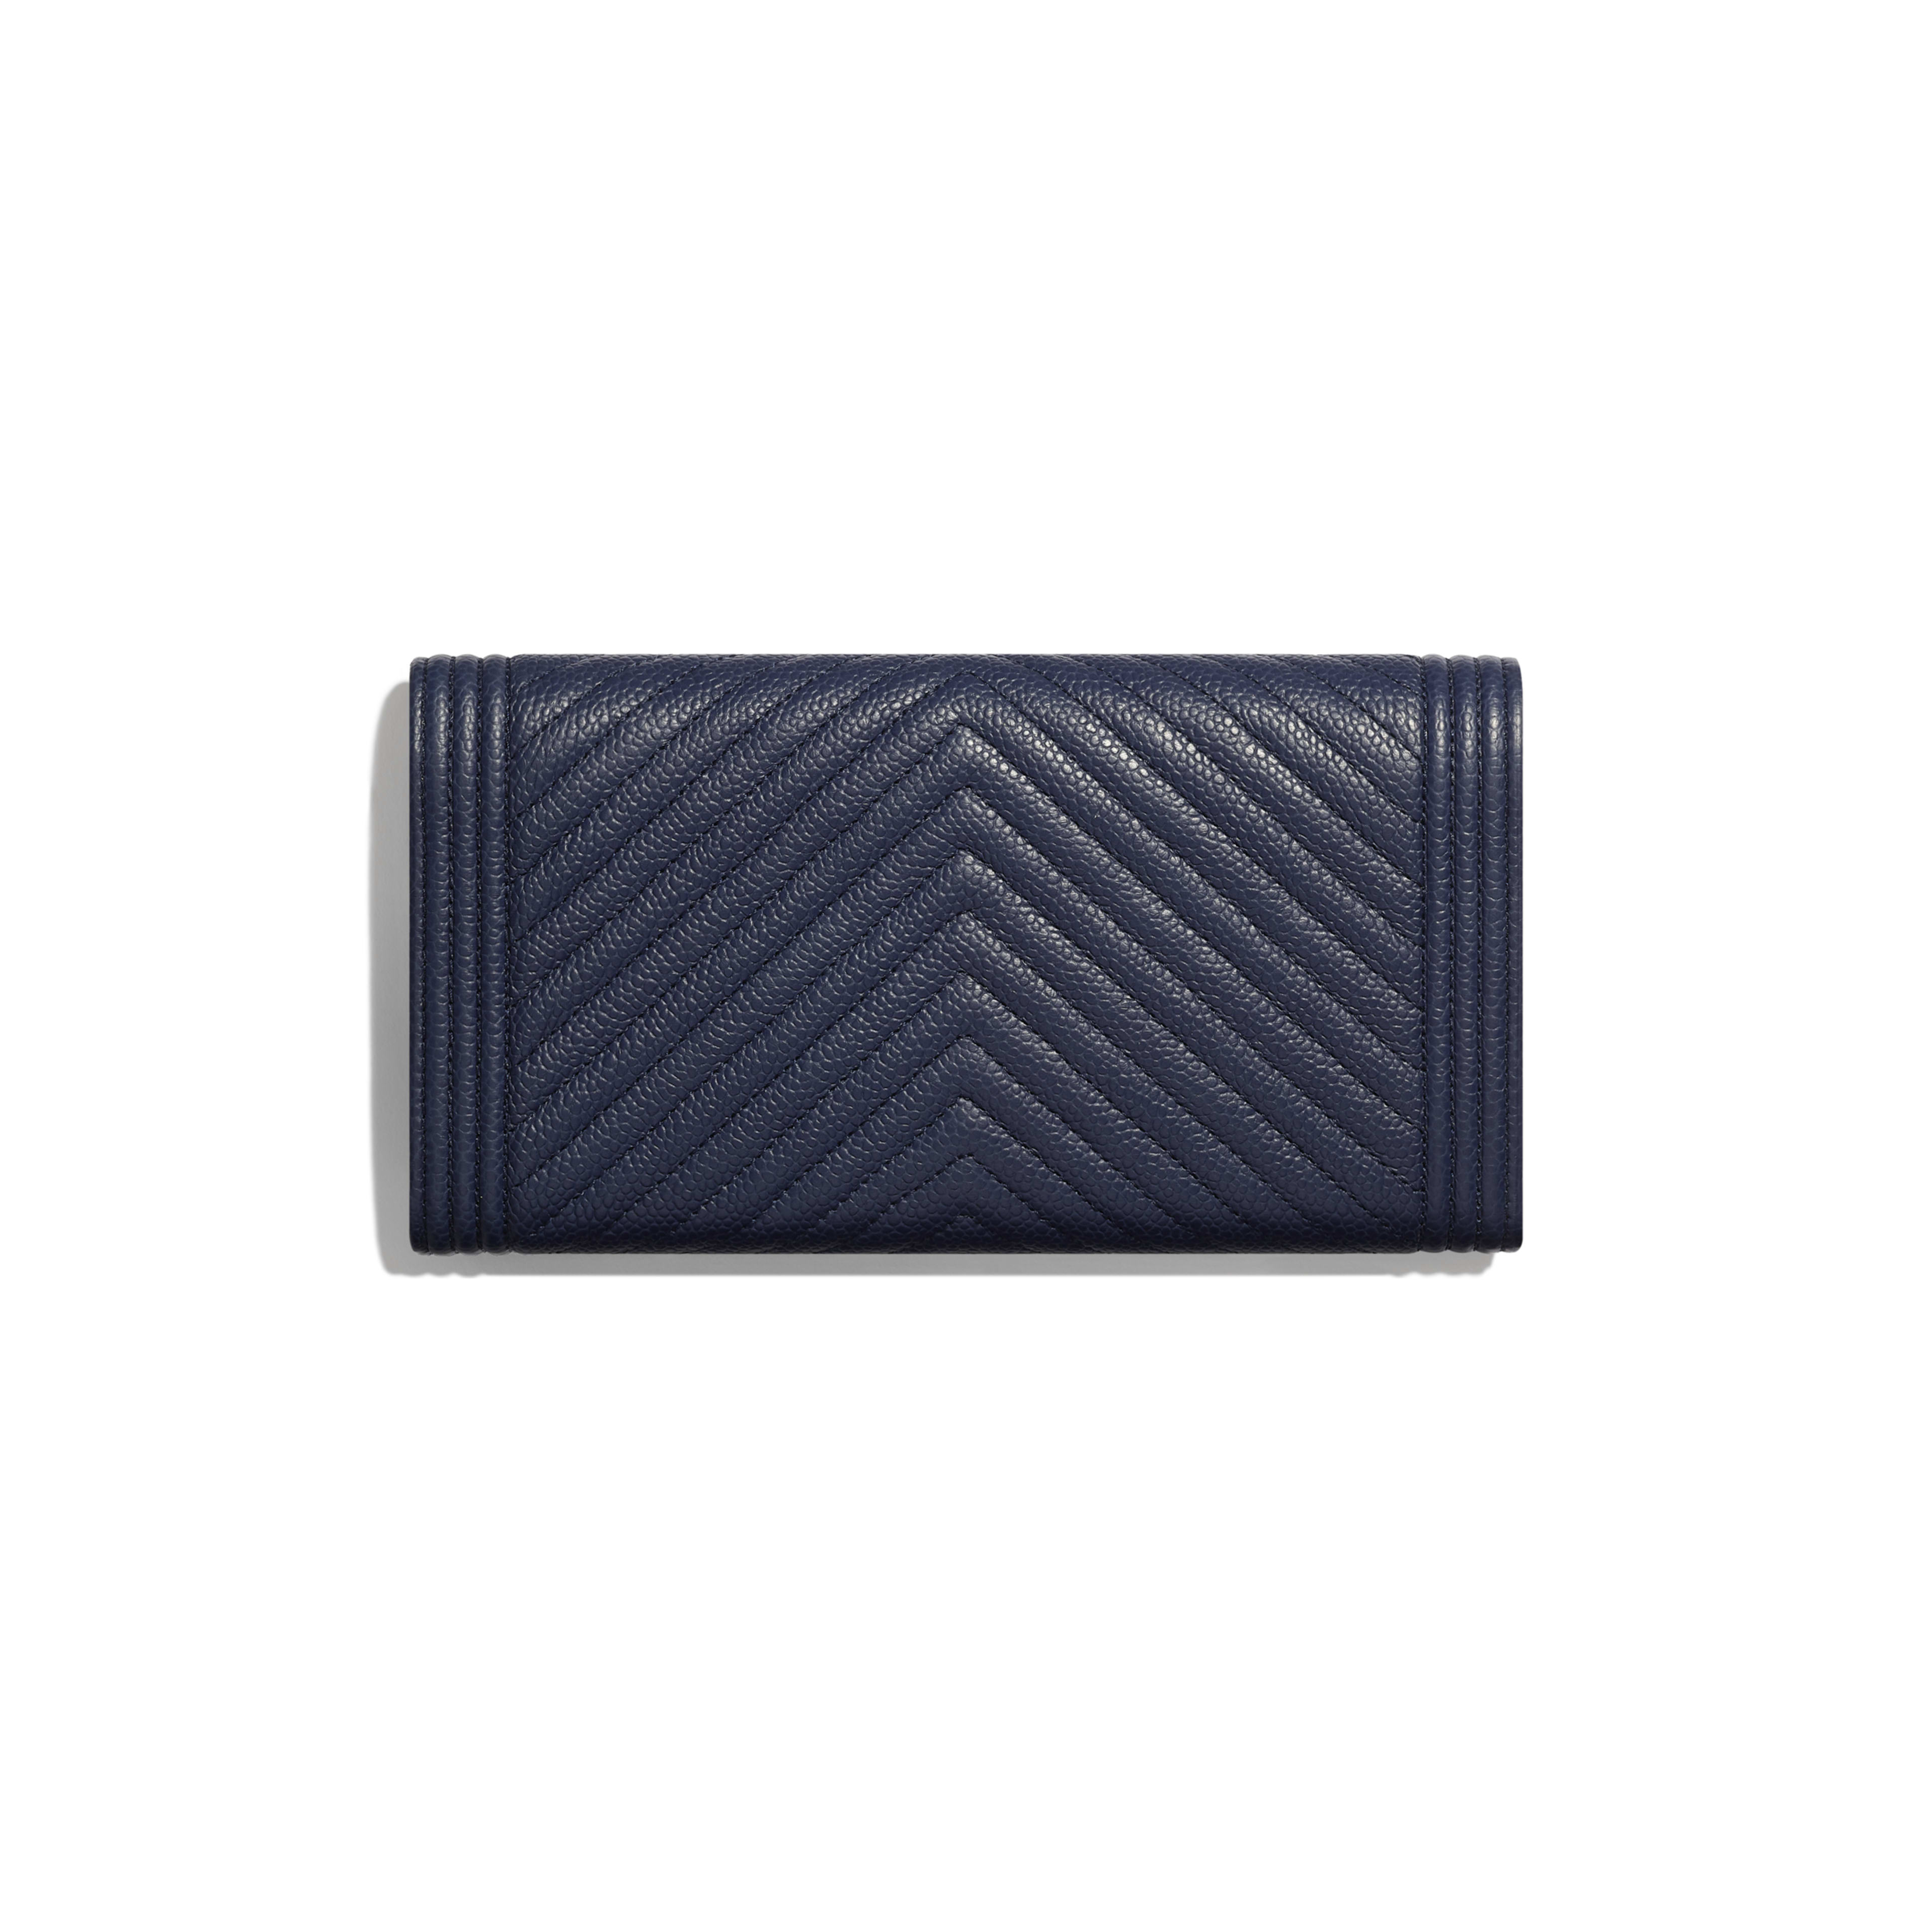 BOY CHANEL Long Flap Wallet - Navy Blue - Grained Calfskin & Ruthenium-Finish Metal - Alternative view - see full sized version